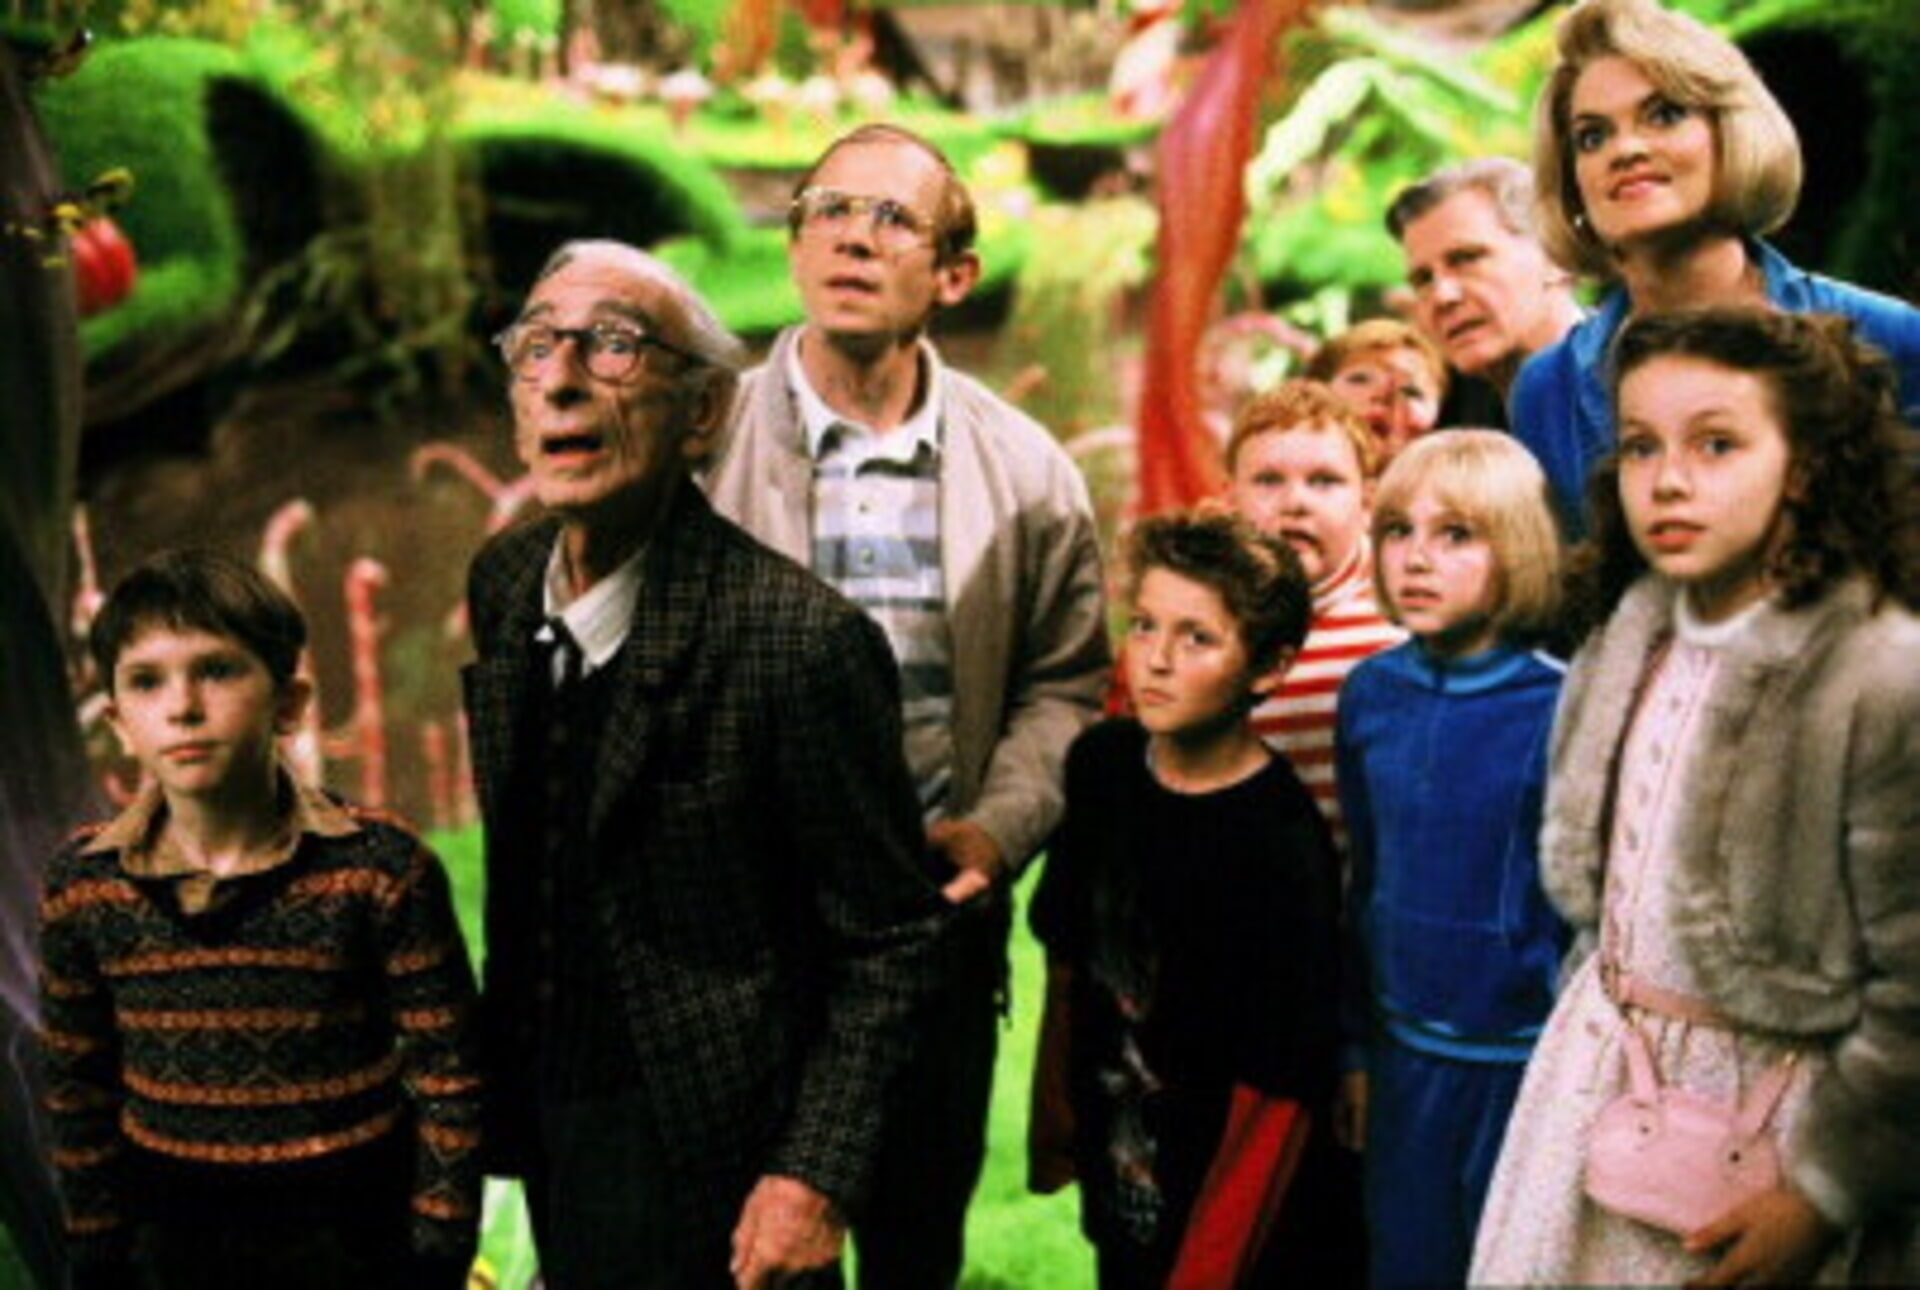 Charlie and the Chocolate Factory - Image 1